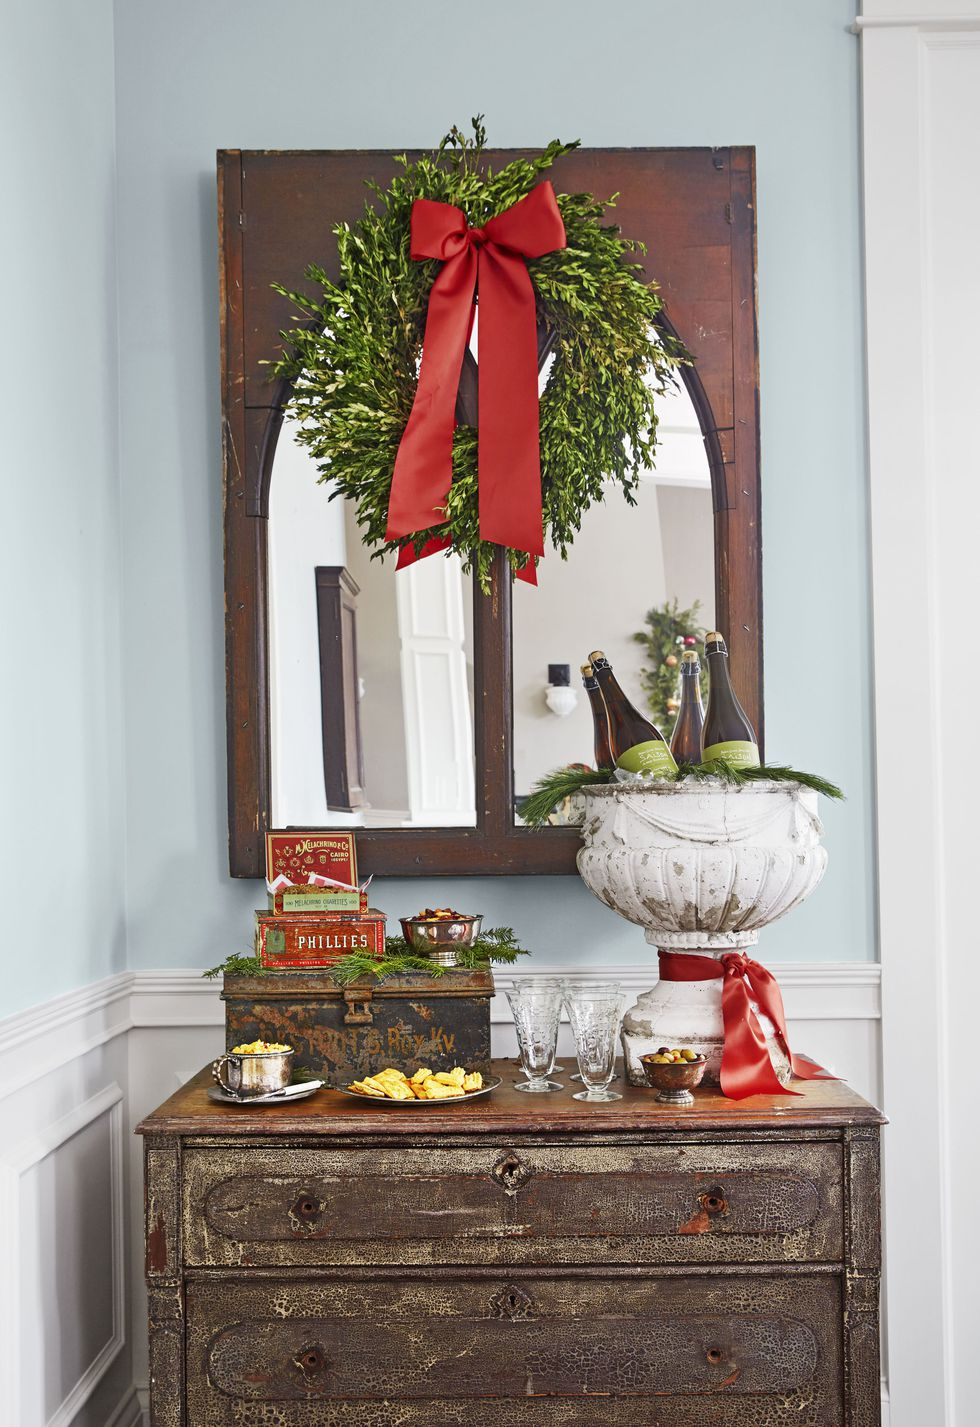 spirit-christmas-past-repurposed-planter-1216.jpg